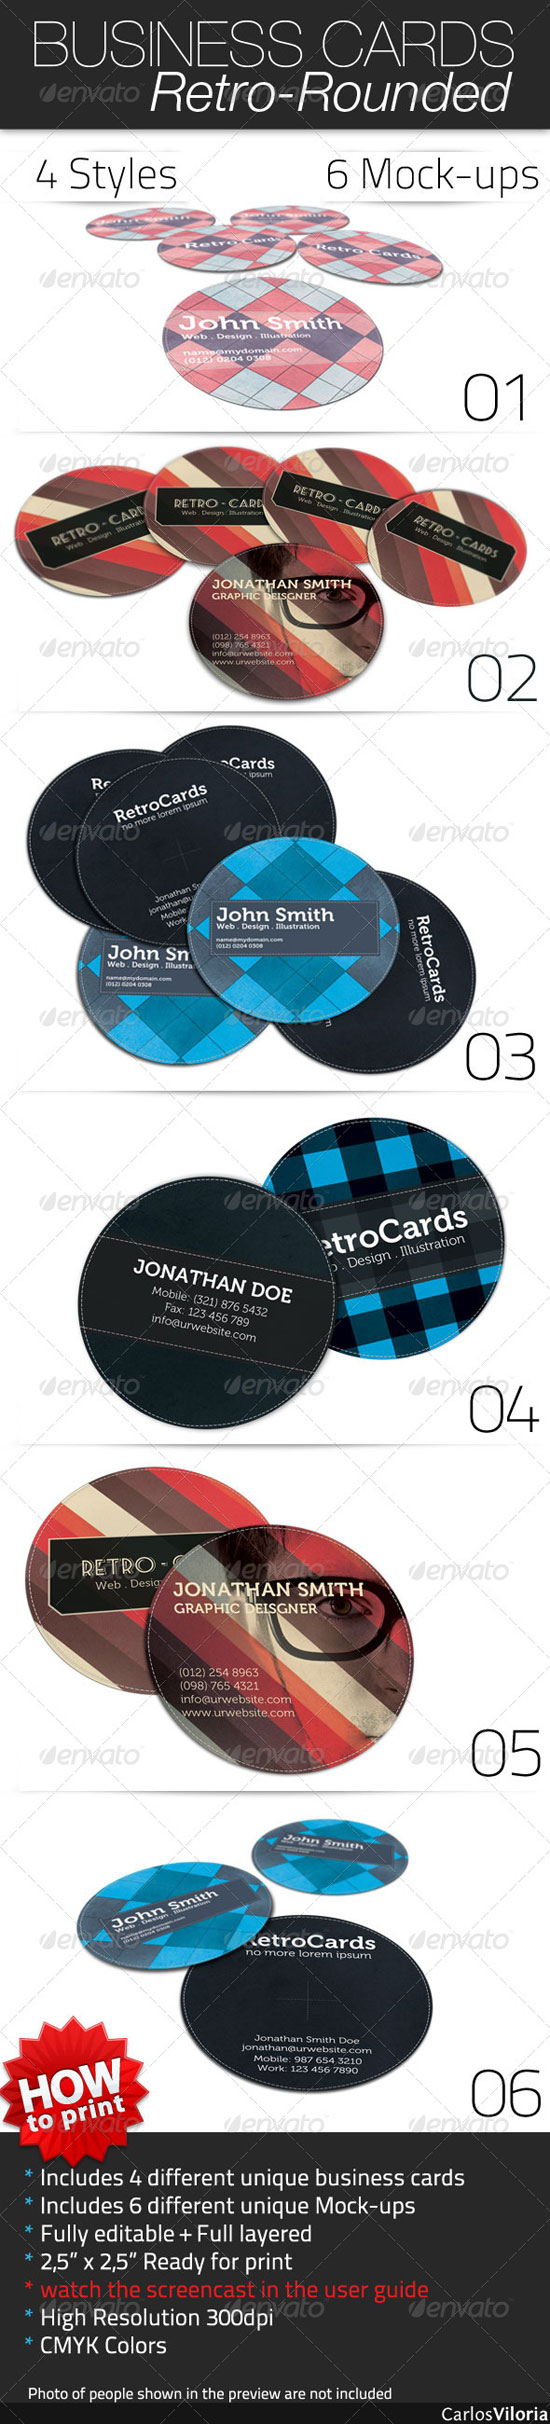 30 creative circle business card designs circle business card designs magicingreecefo Image collections